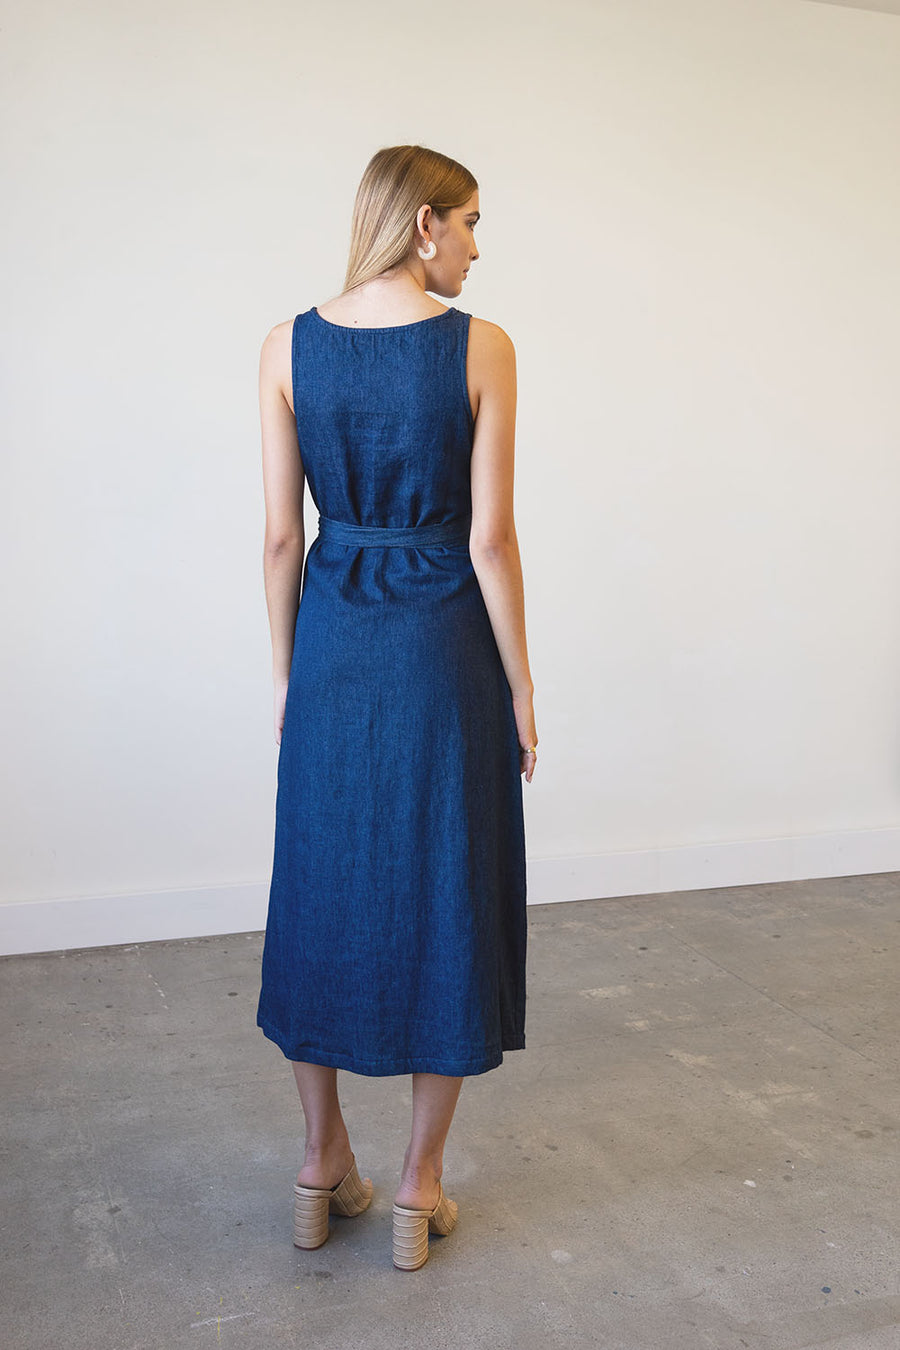 [SOLD OUT] Eclipse Dress in Hemp Denim